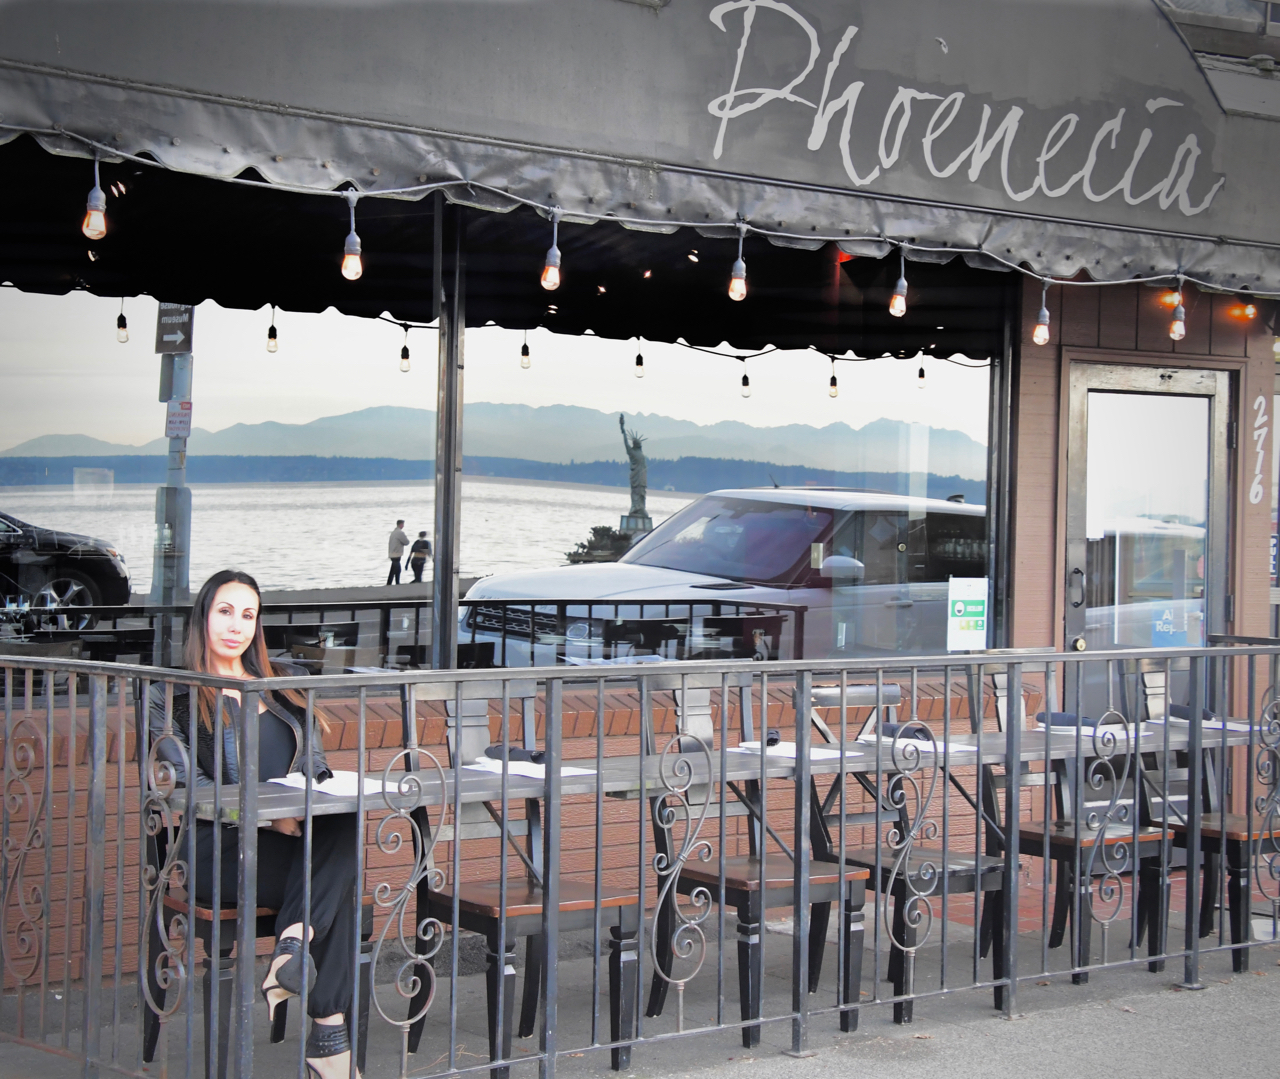 Sonya Khazaal in front of her family's restaurant The Phoenecia on Alki Beach. Photo by Patrick Robinson